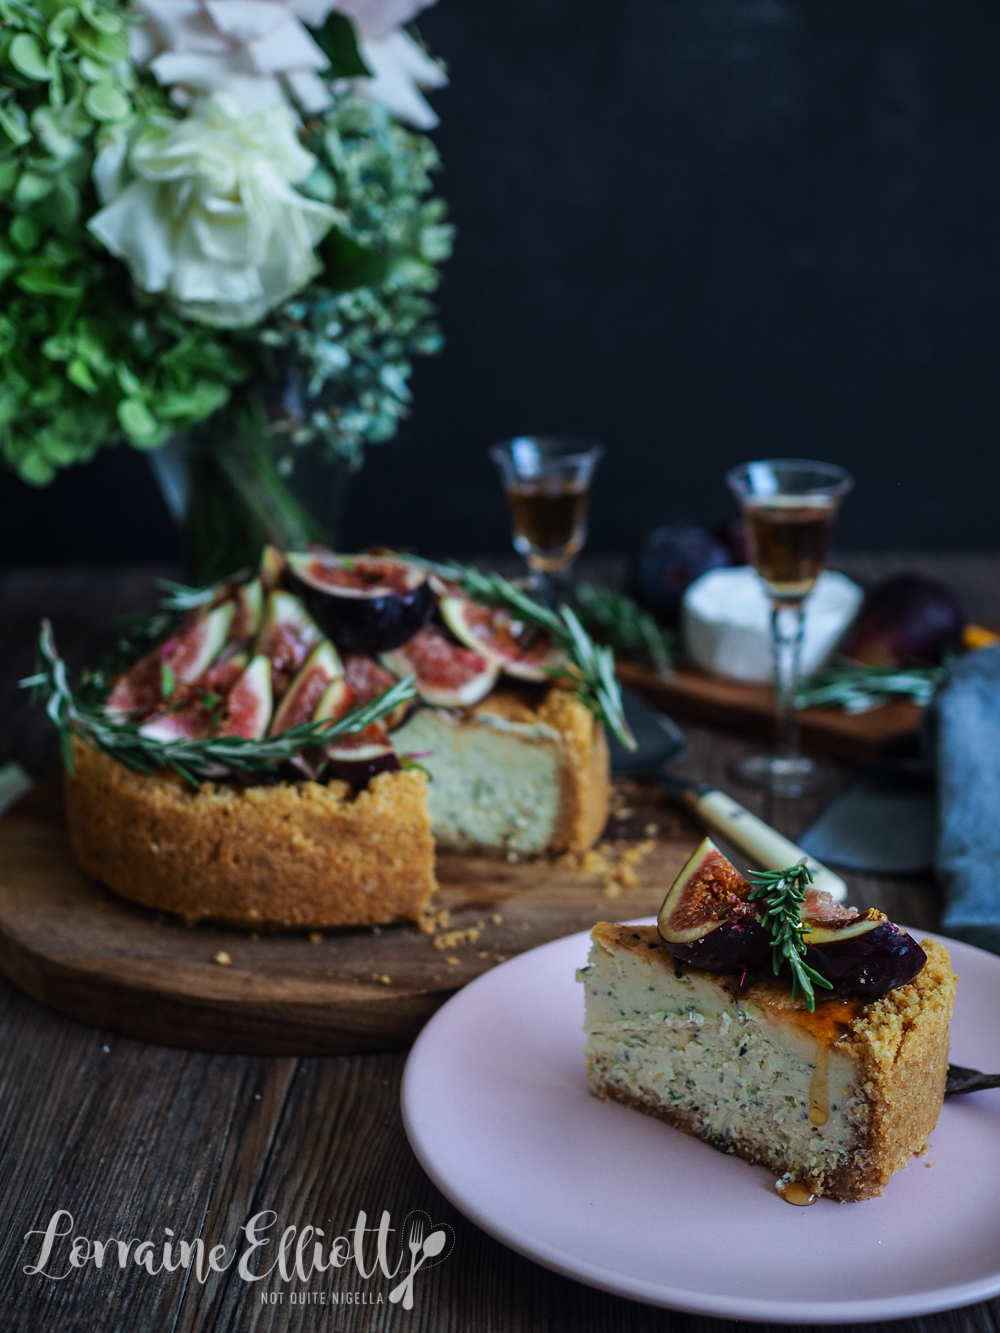 Brie and Chive Savory Cheesecake